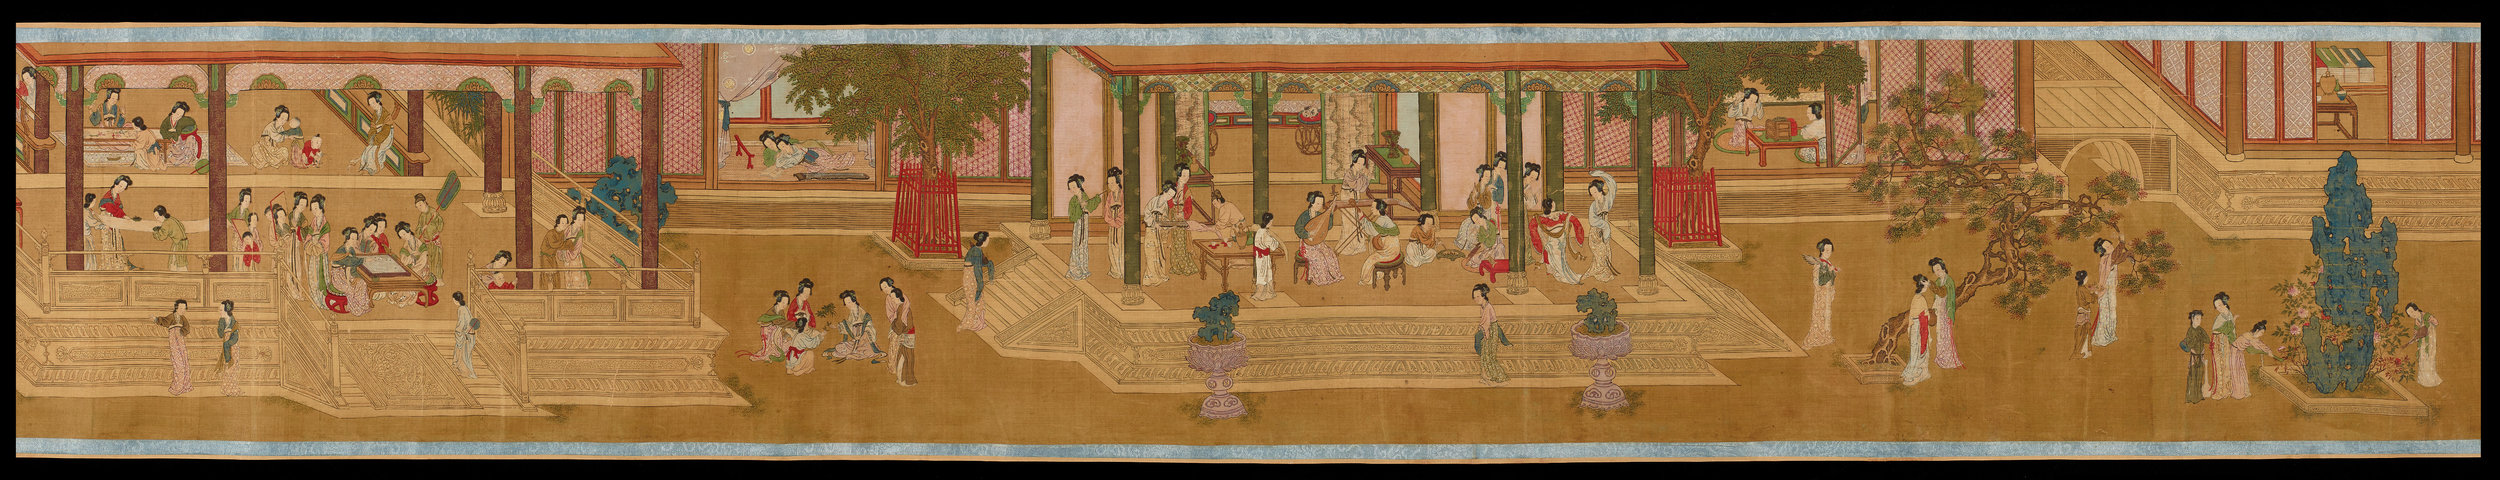 Copy of a Ming handscroll showing the occupations of the court ladies  - SilkAbout AD 1644–1911ChinaBritish MuseumThis painting, copied from a famous Ming scroll, is an idealised portrayal of Chinese courtly life. It depicts a spring morning in the Han Palace. Wearing traditional Ming costumes, the women of the court are shown at their leisure, playing musical instruments, dancing, having their portraits made and playing games.Aside from the empress, many women occupied the court as courtesans or servants. The concubines were often sent to the imperial court from surrounding states, like Mongolia and Korea.